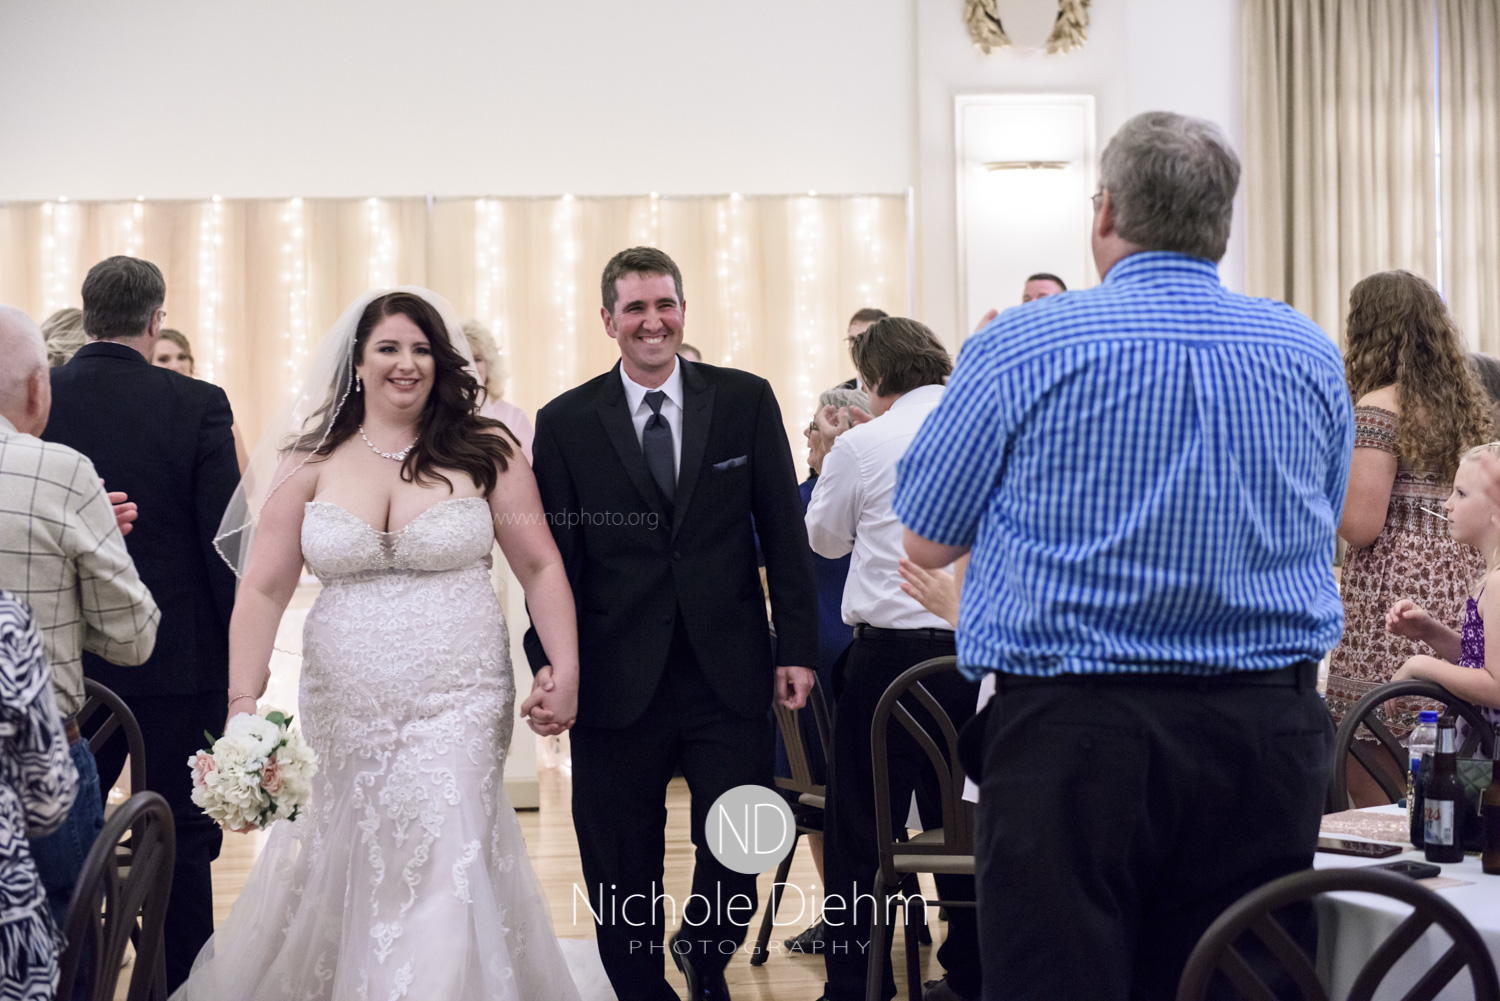 Darren & Lauren Cedar Falls Waterloo Iowa Wedding photography MOD Brown Derby-148.jpg